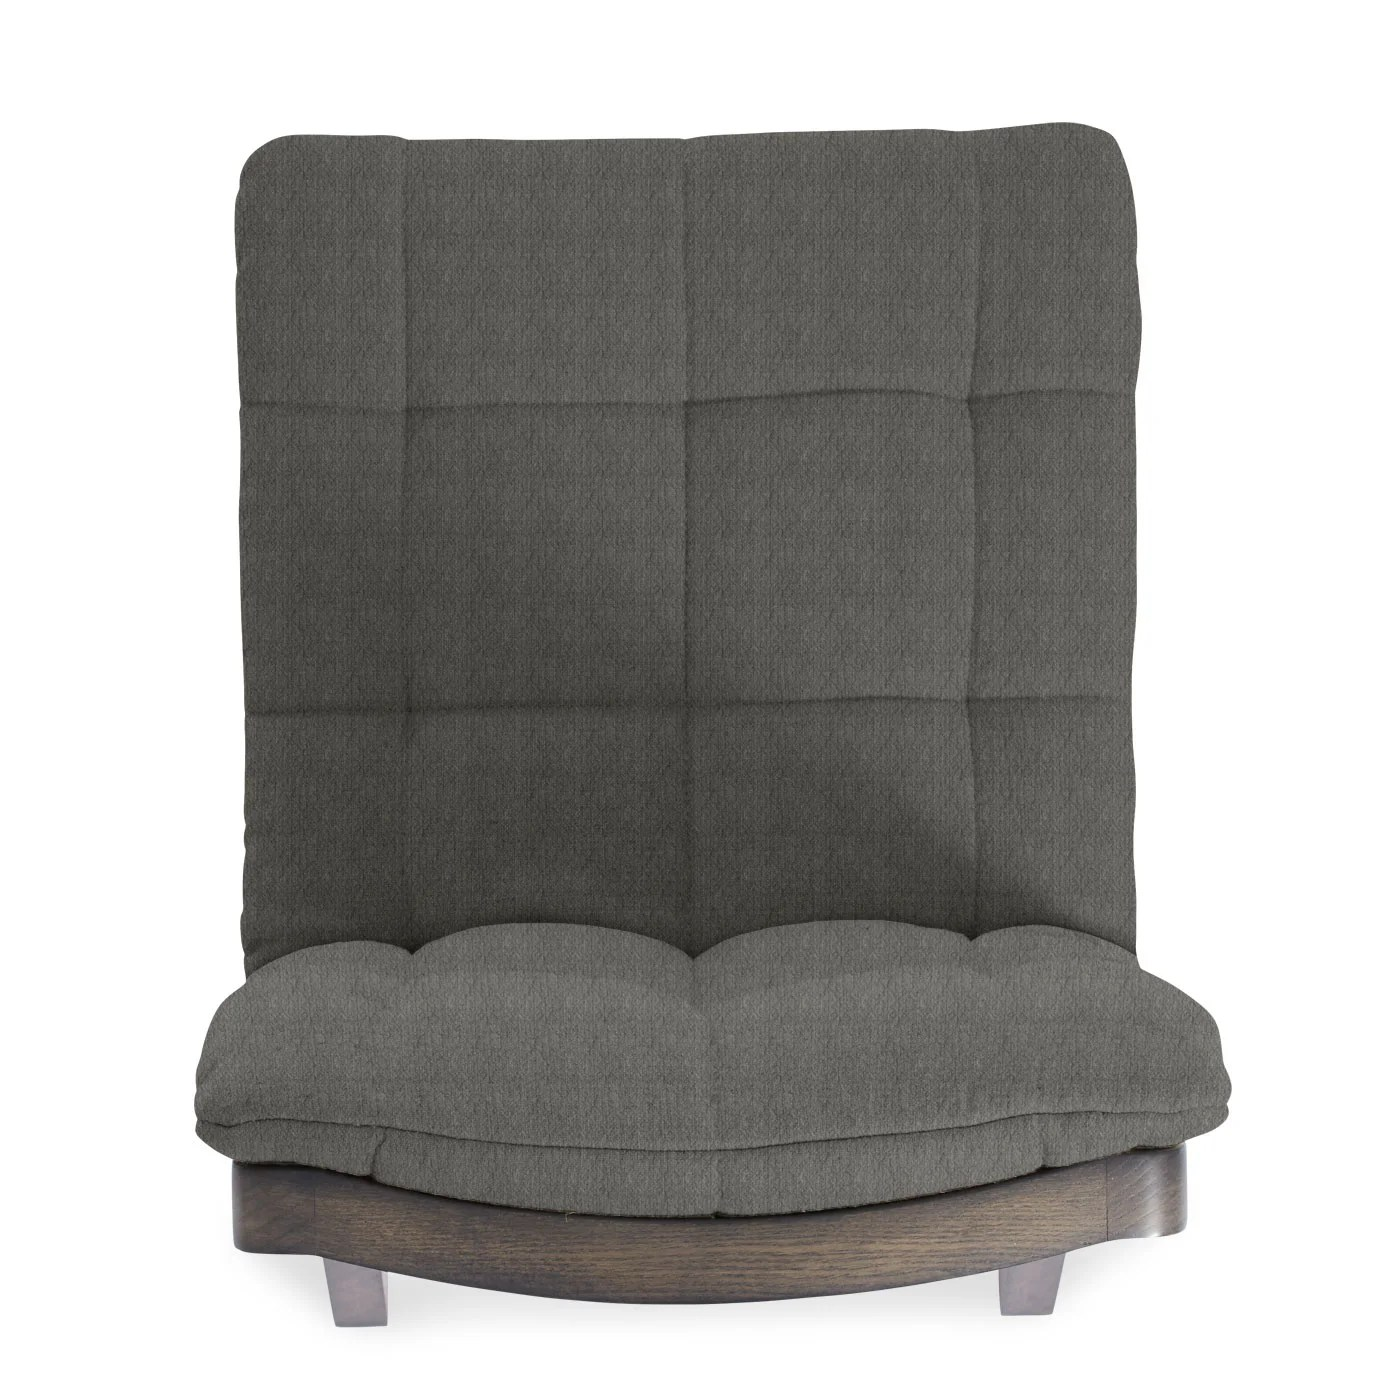 blu dot chairs arm chair caddy wicket and reviews wayfair